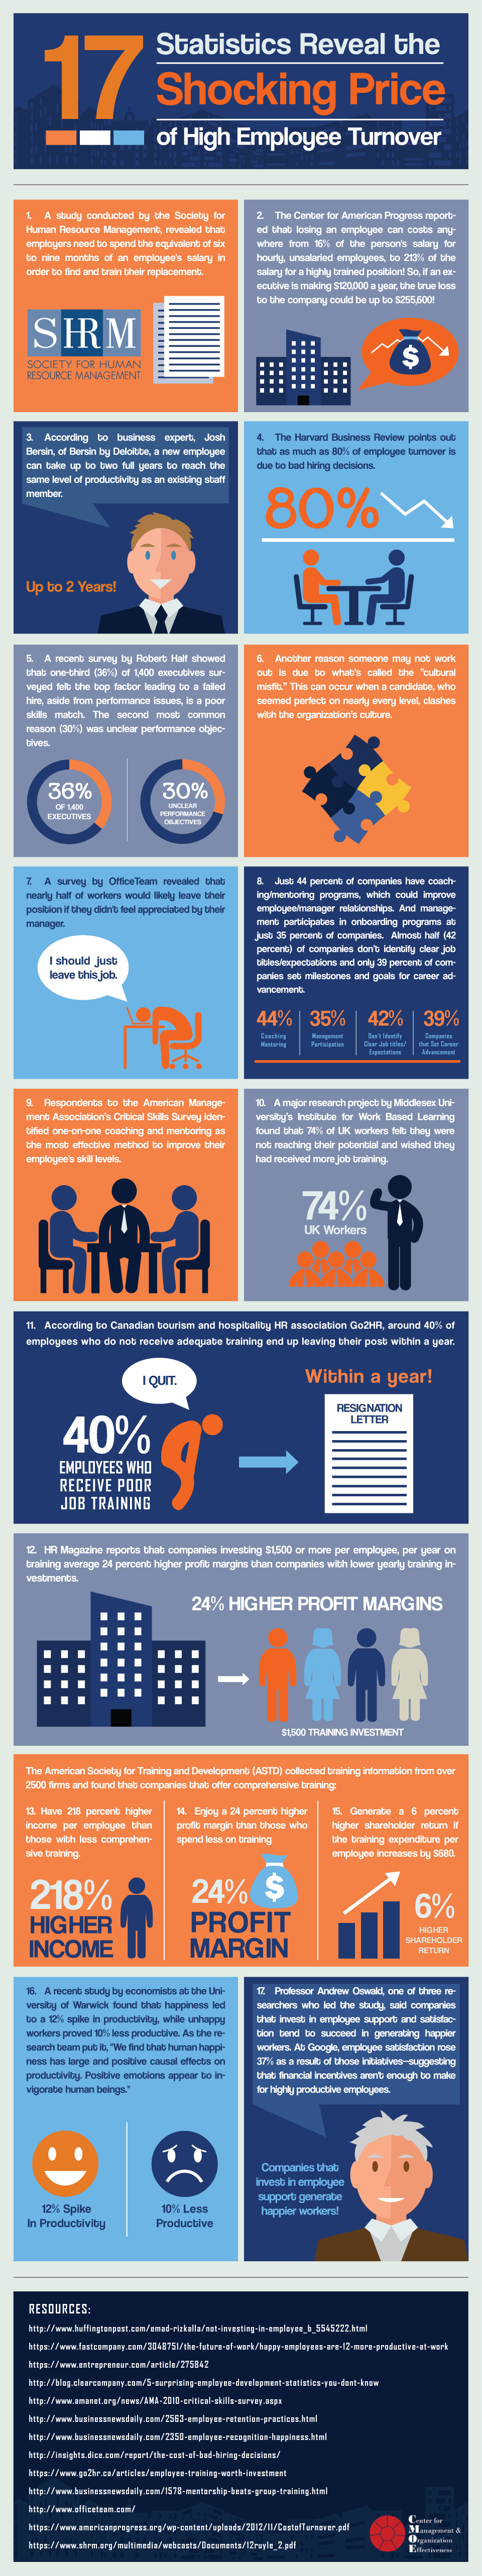 employee-turnover-infographic-final